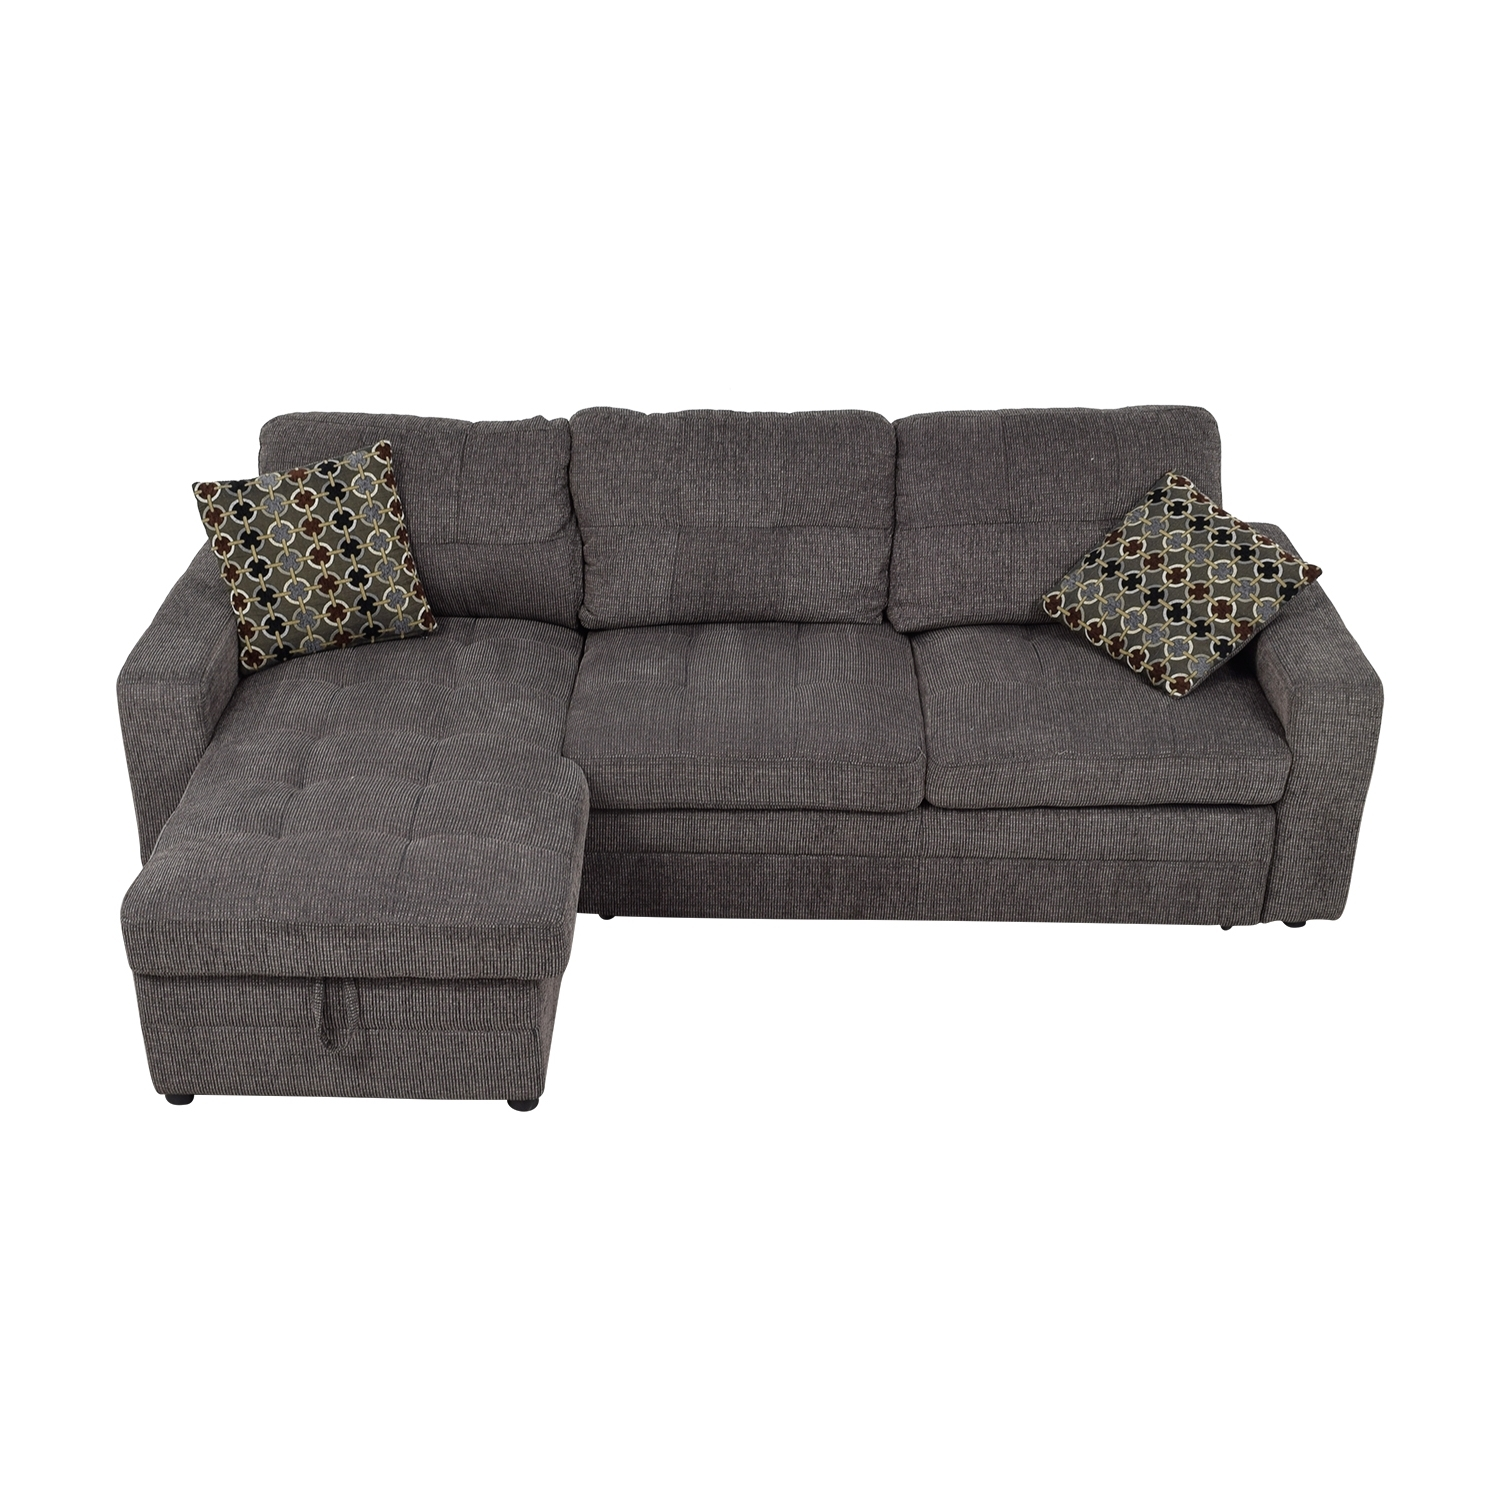 Used Sectional Sofas With Regard To Trendy Sectionals: Used Sectionals For Sale (View 16 of 20)